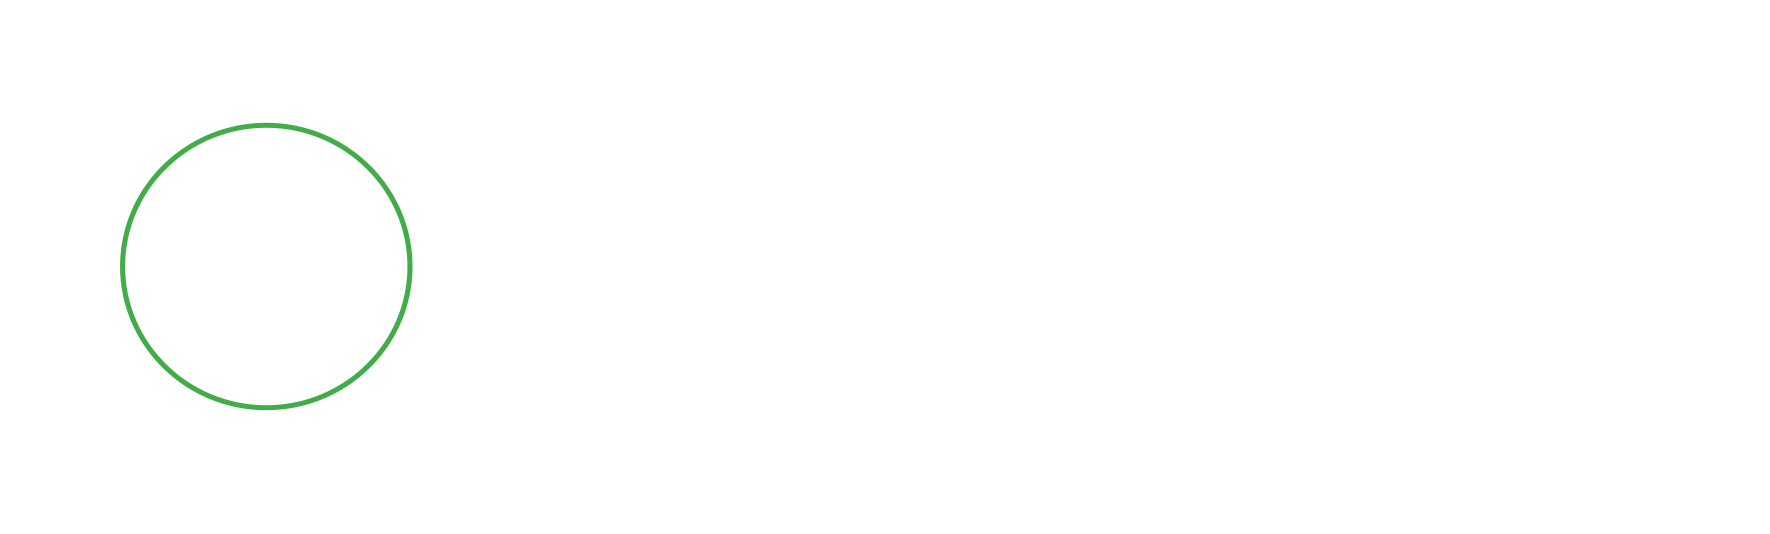 Lazer Ladies